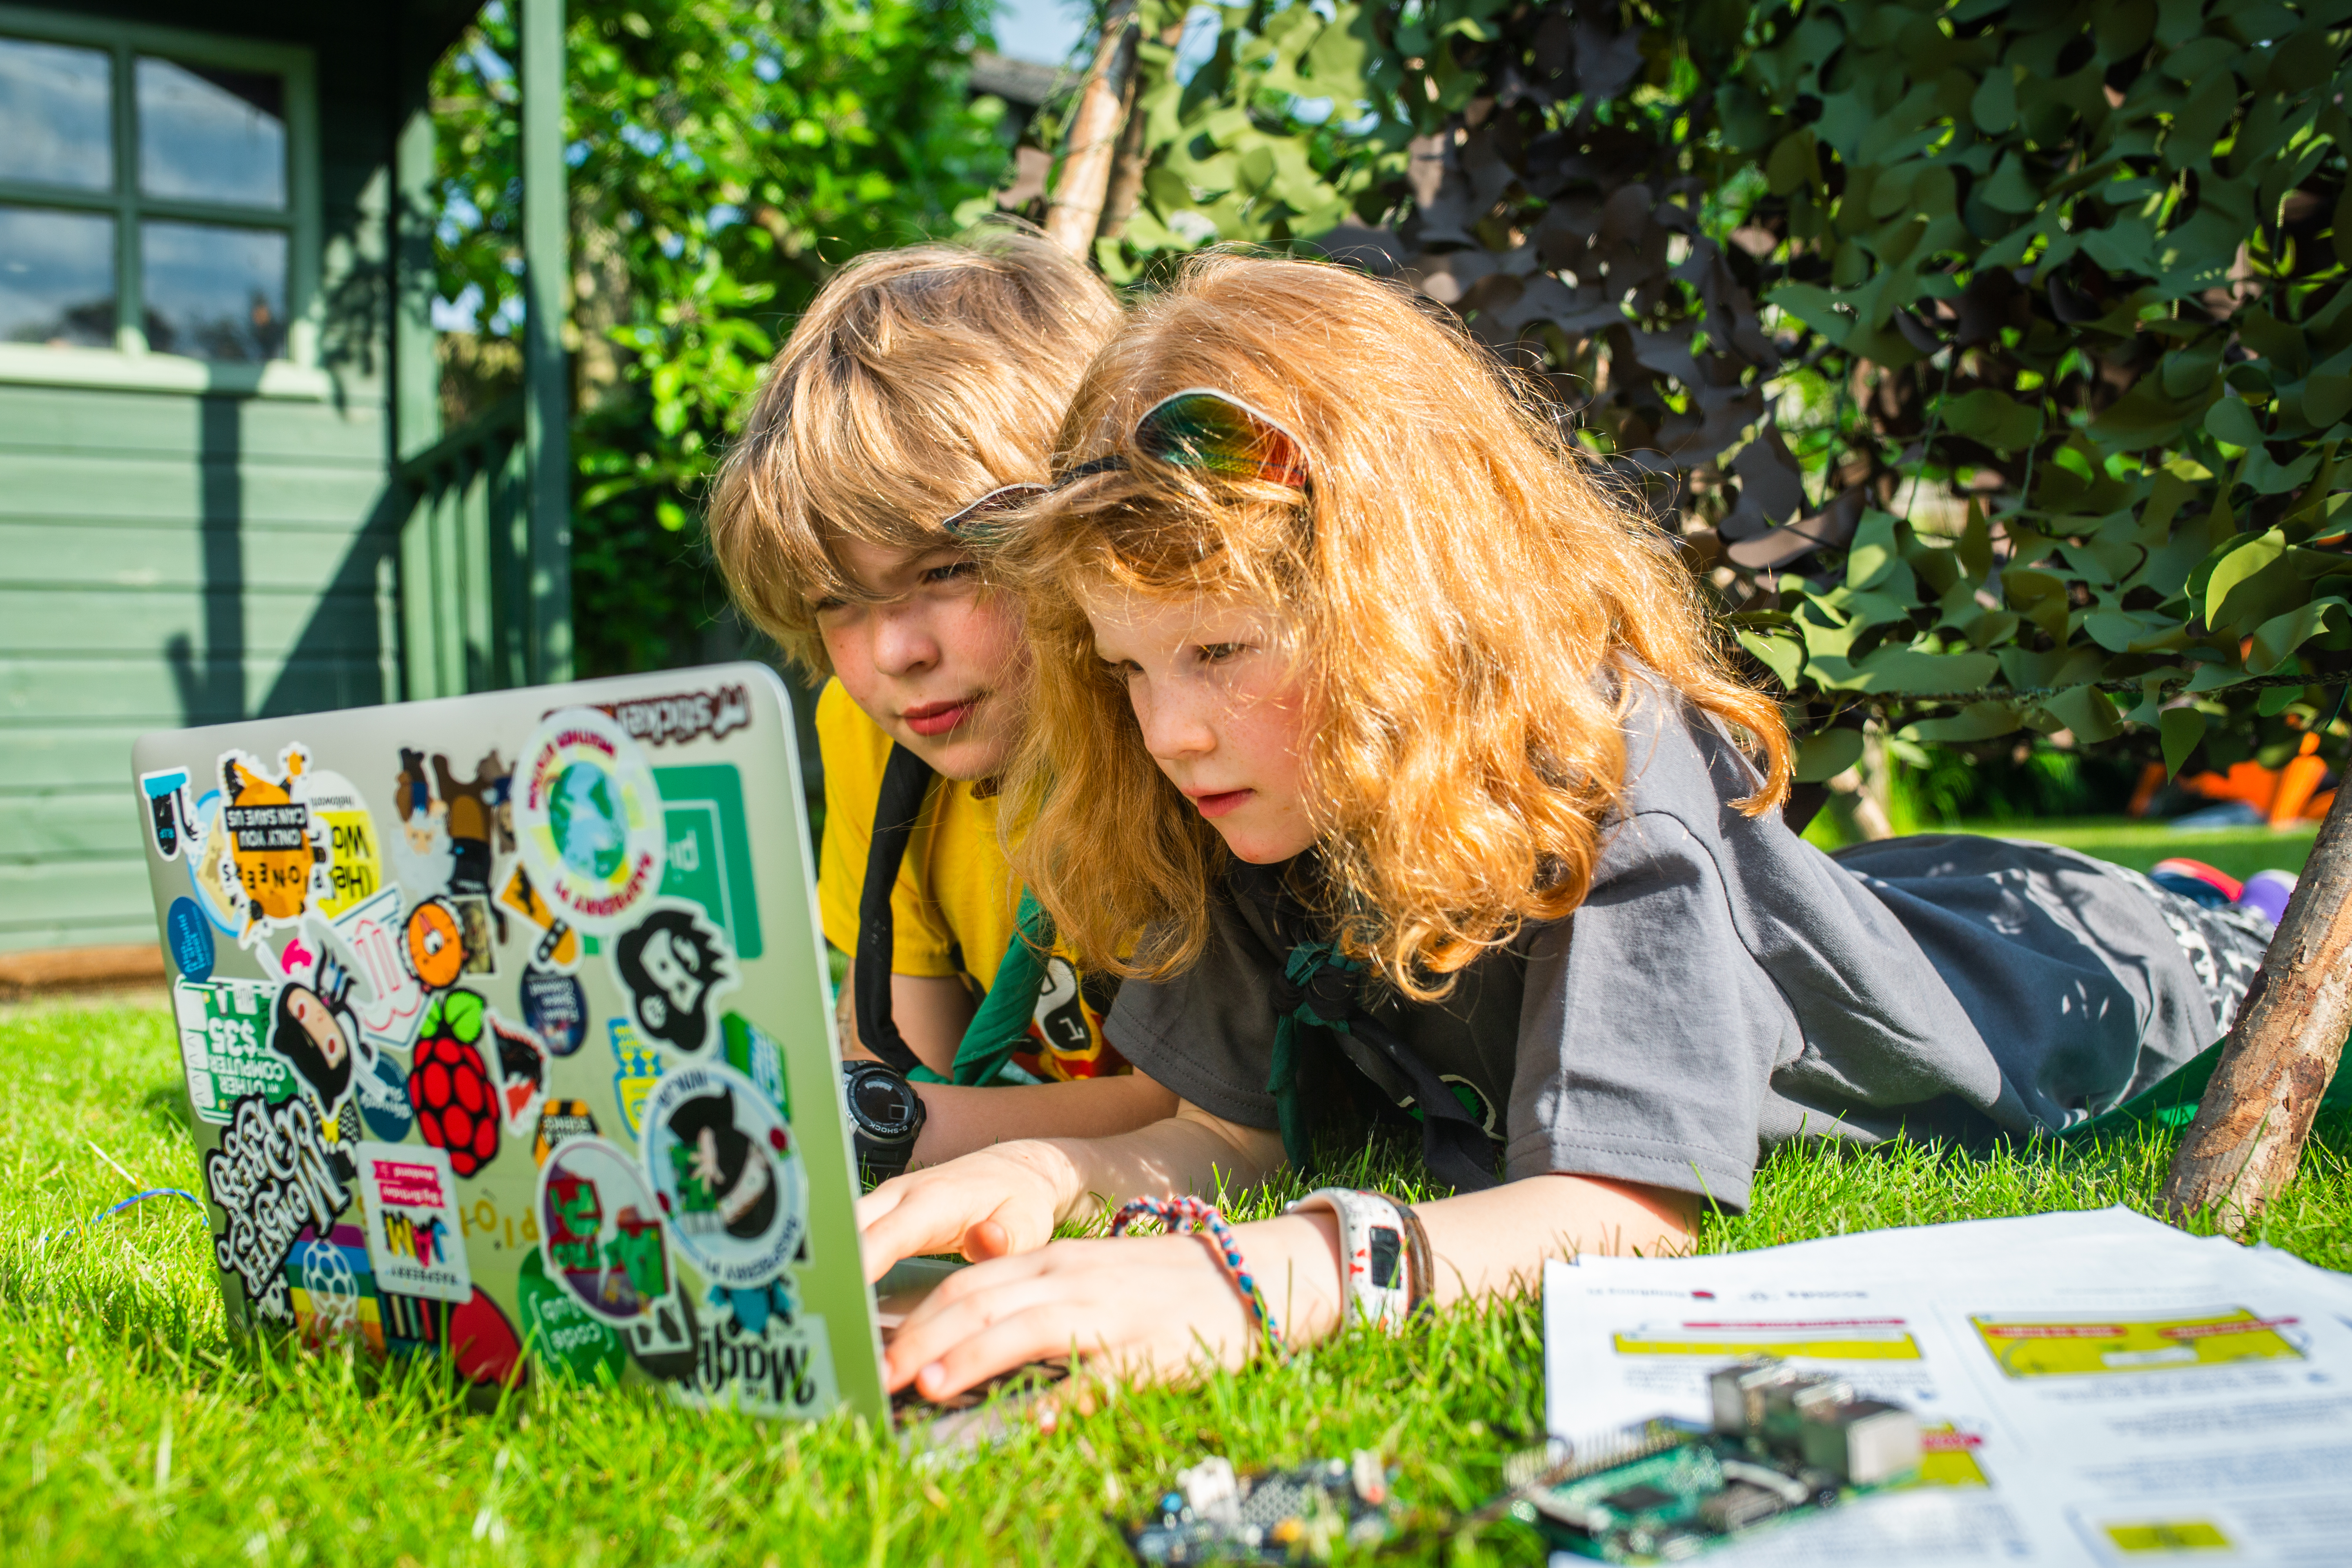 Two young children are propped on their elbows next to one another, using a laptop covered with stickers in a sunny garden. A Raspberry Pi and worksheets are beside them.